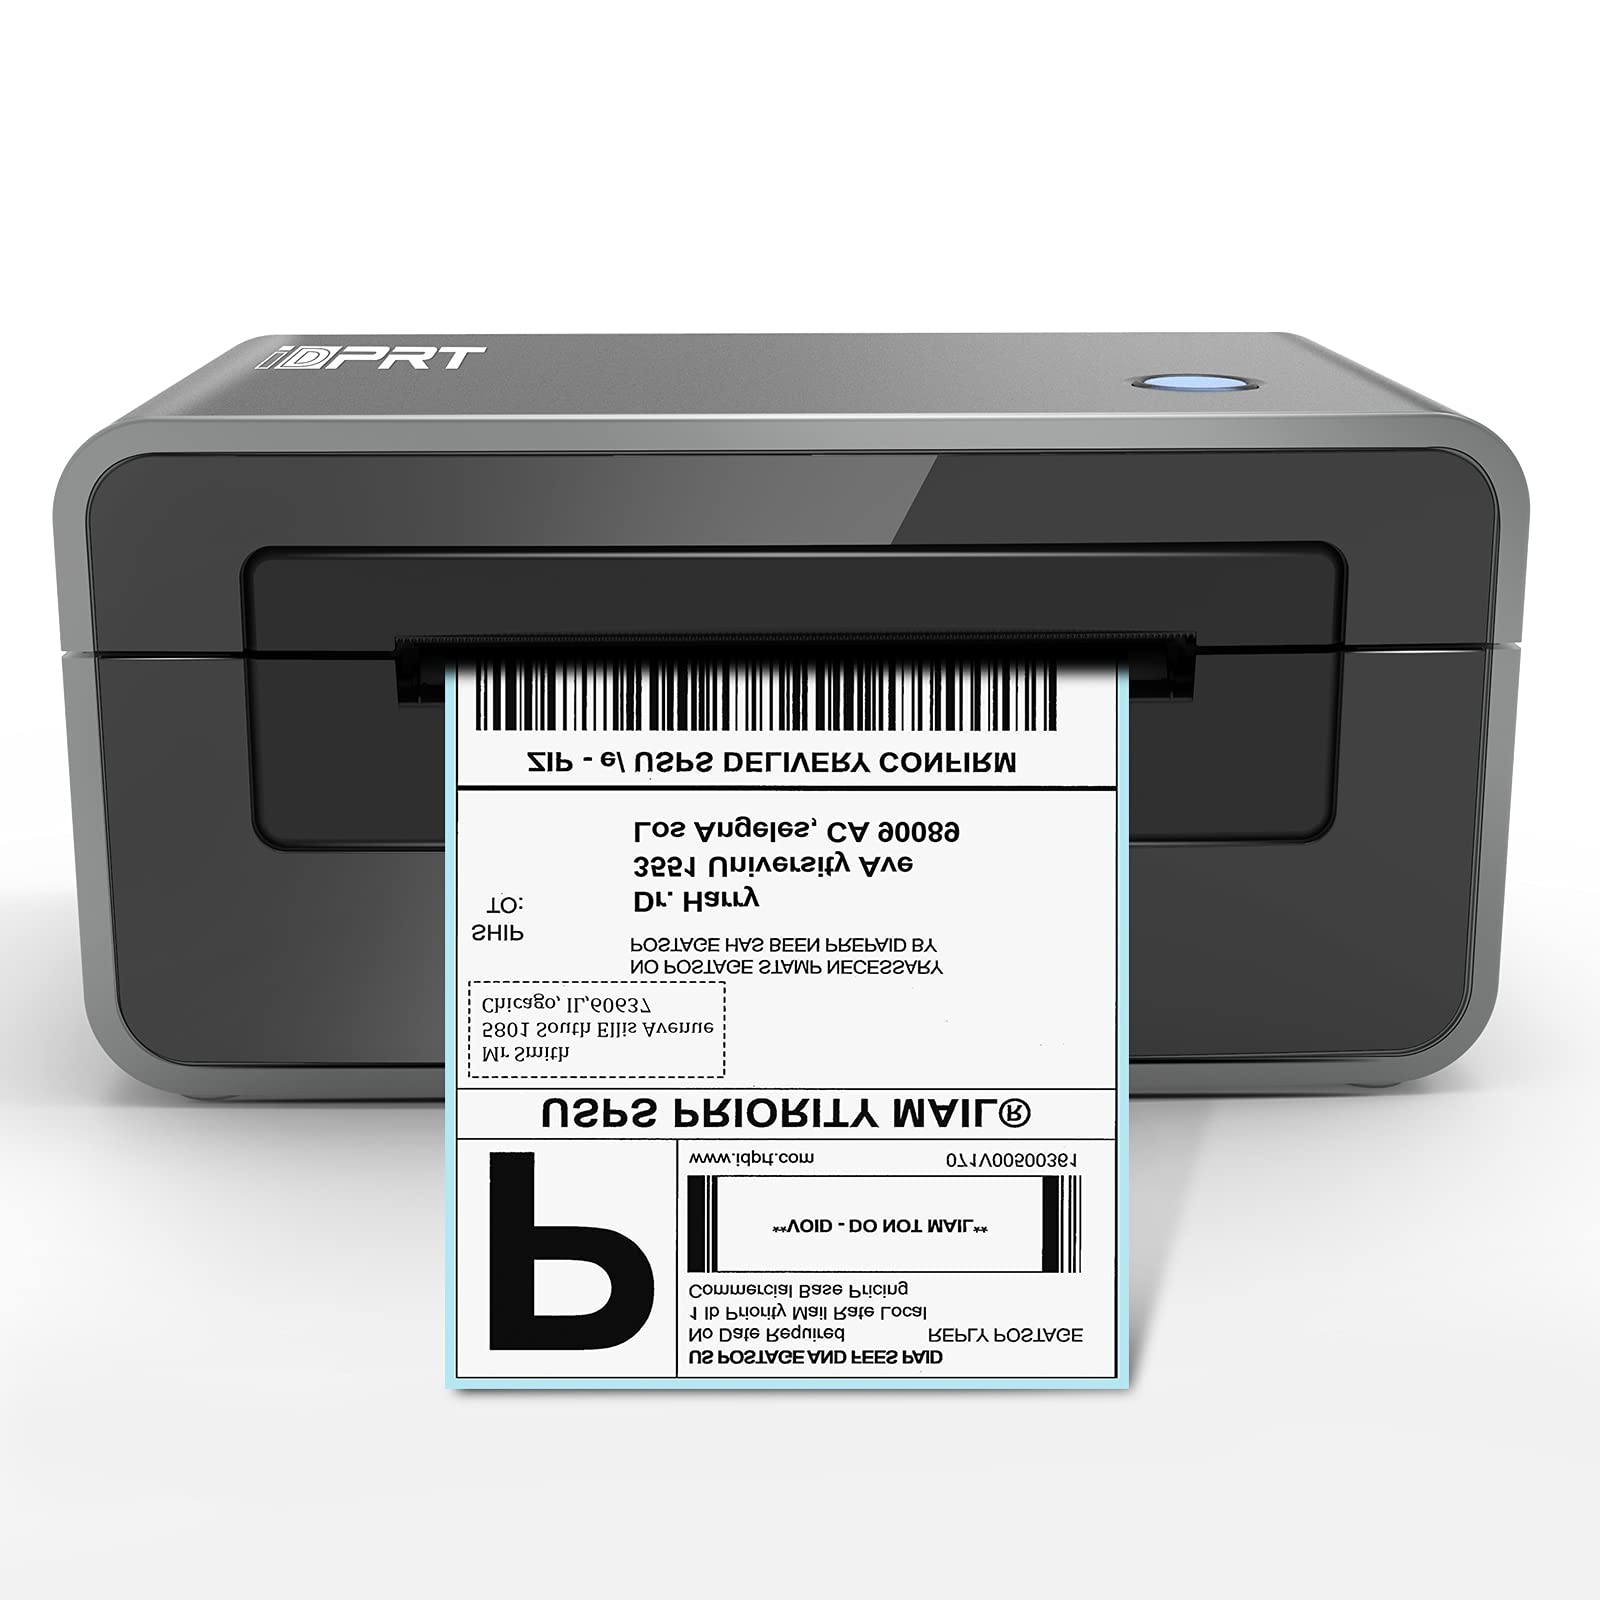 iDPRT Thermal Label Printer, High-Speed 4×6 Shipping Label Printer Maker, Support with Windows & Mac, Label Maker for Delivery and Business, Compatible with Shopify, Ebay, Amazon, PayPal,etc.